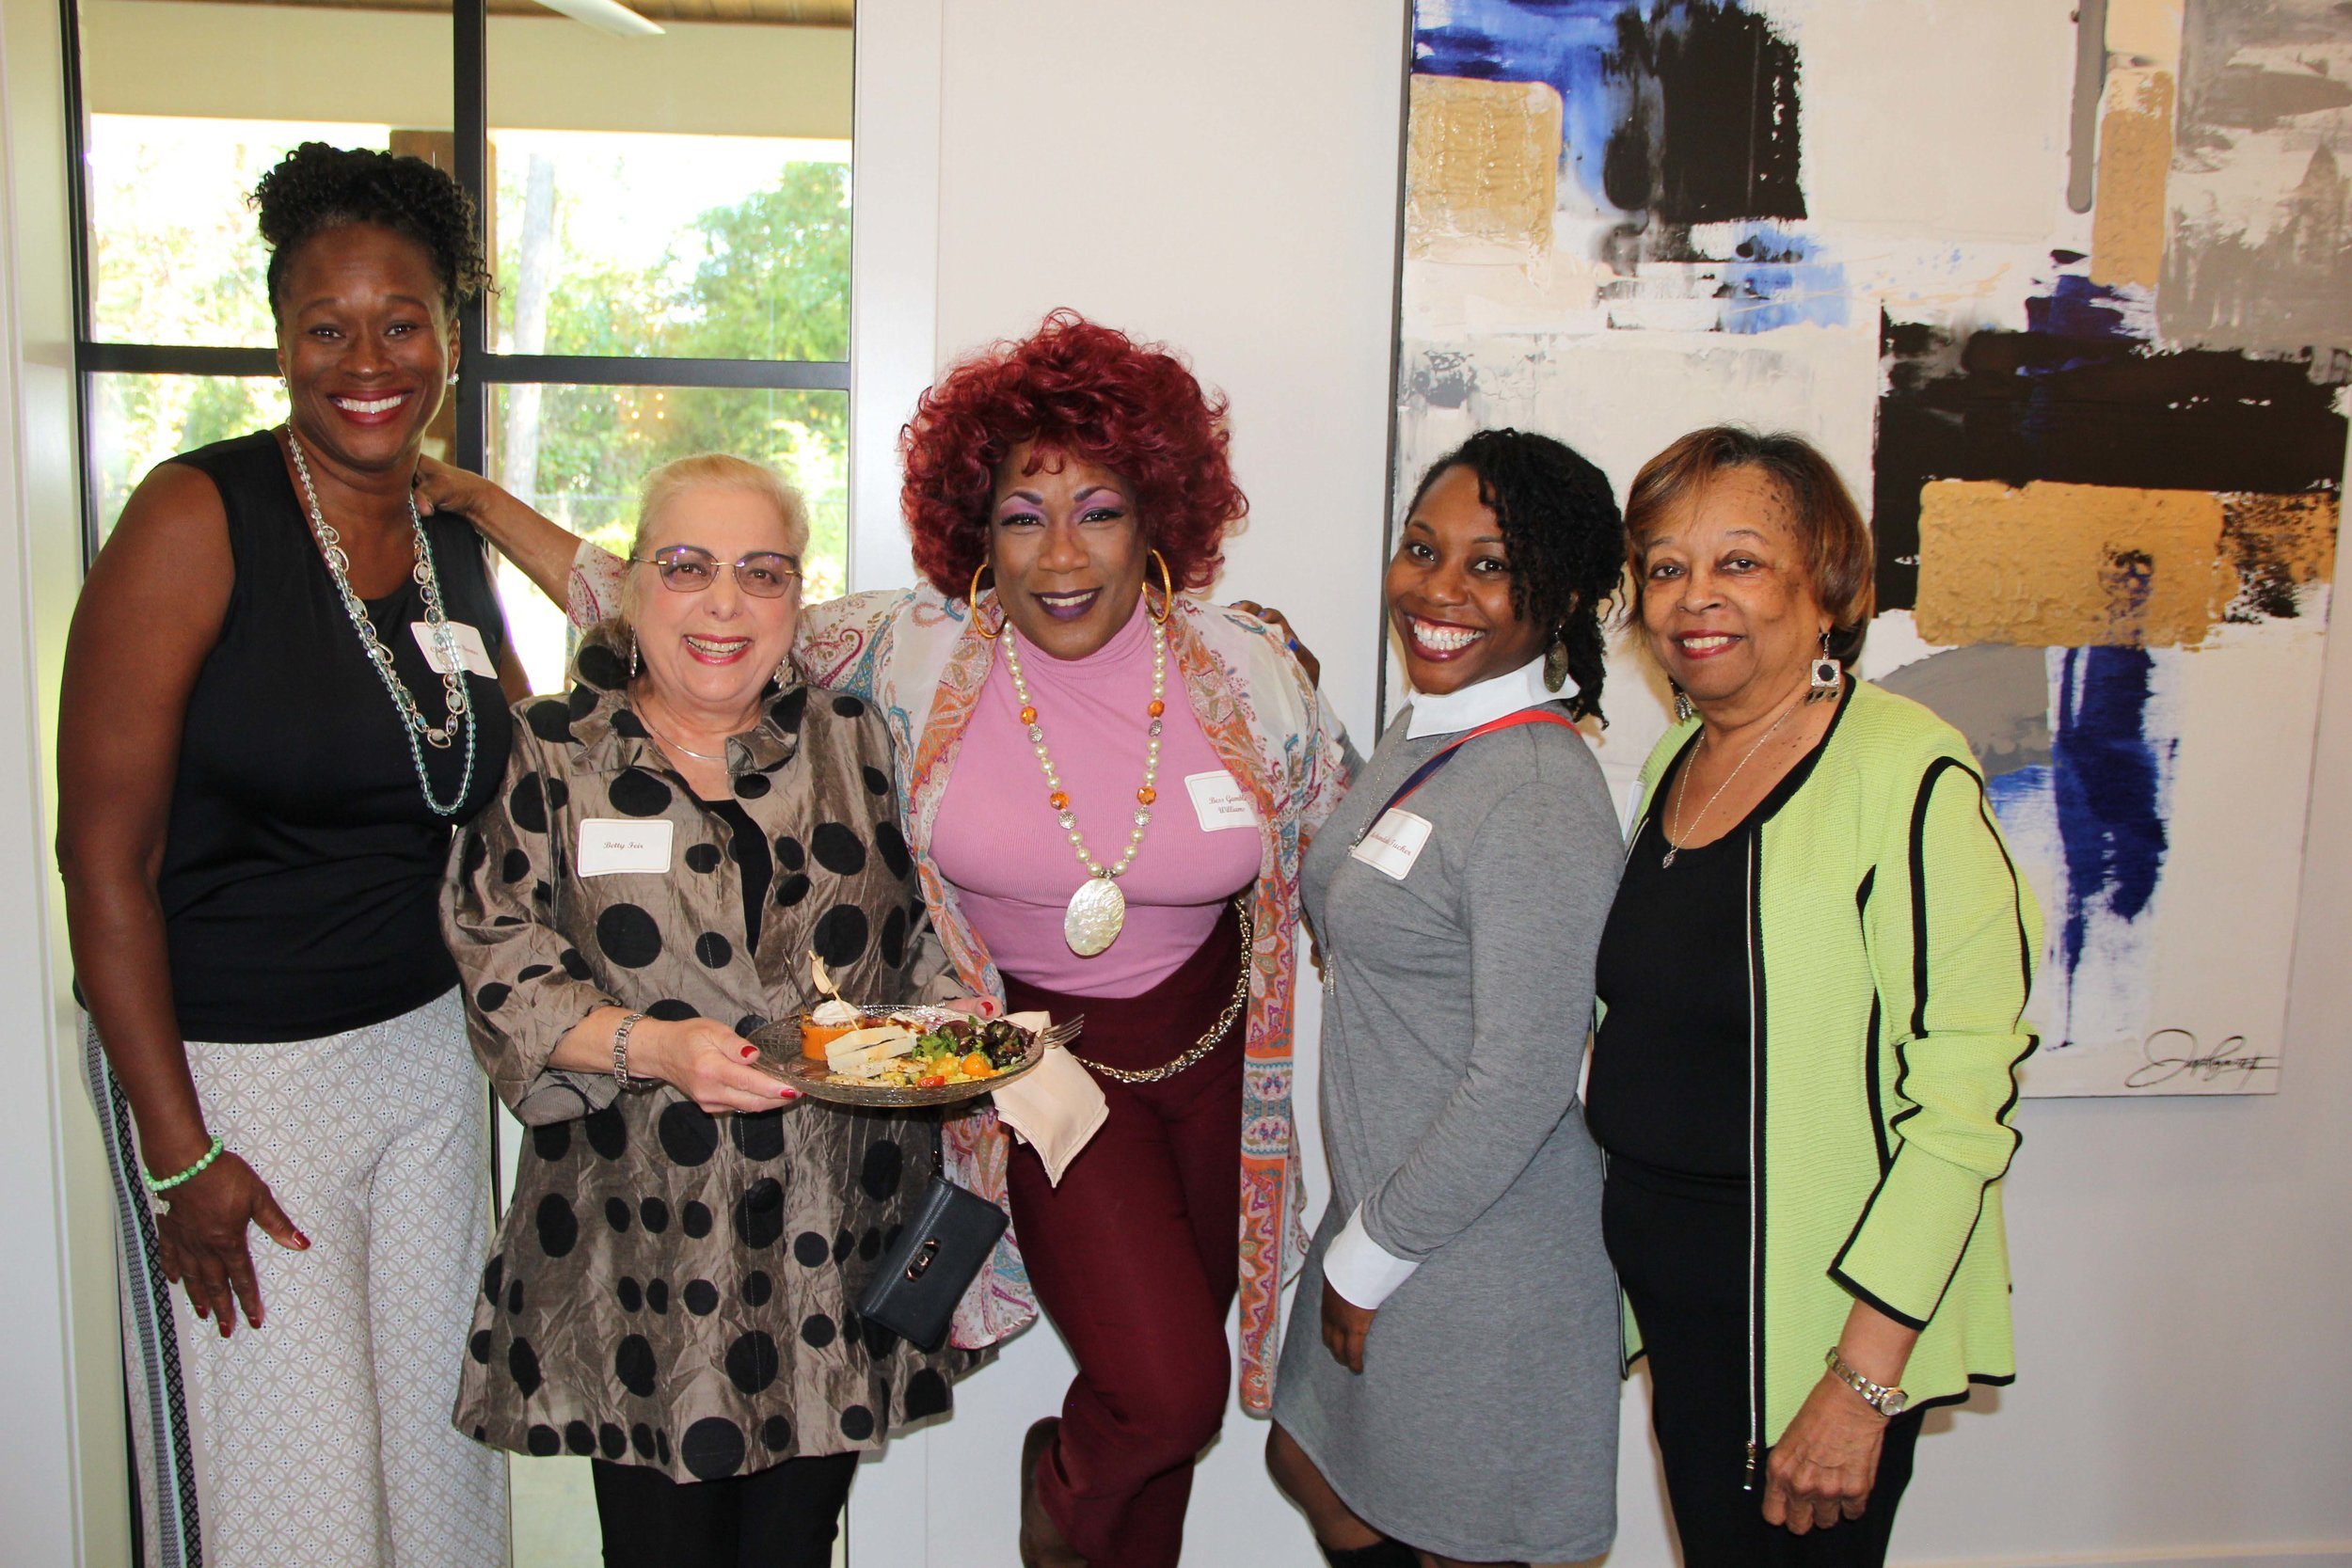 Charissa Barnes, Dr. Betty Feir, Bess Gamble Williams, Meshandale Tucker and Peggy Ross